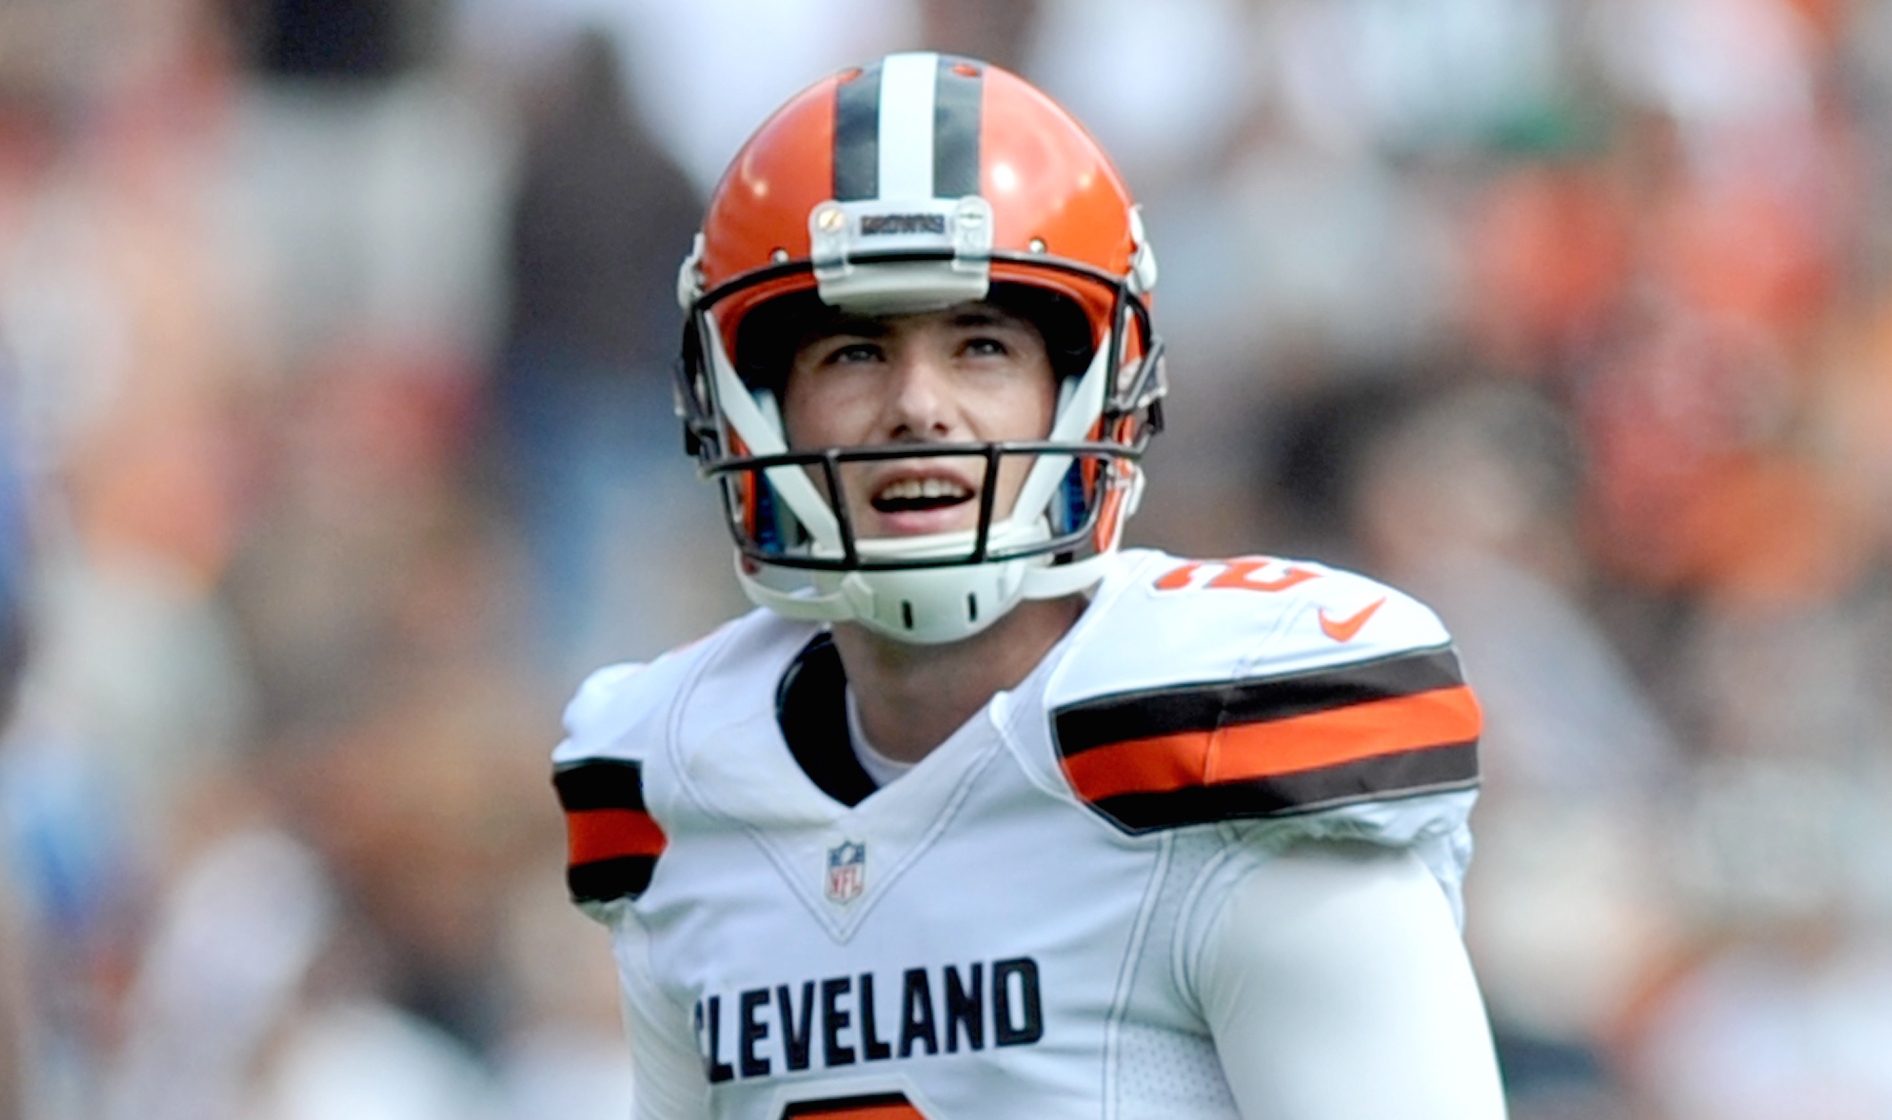 Browns K Pat Murray hurts knee as Cleveland's injury woes continue